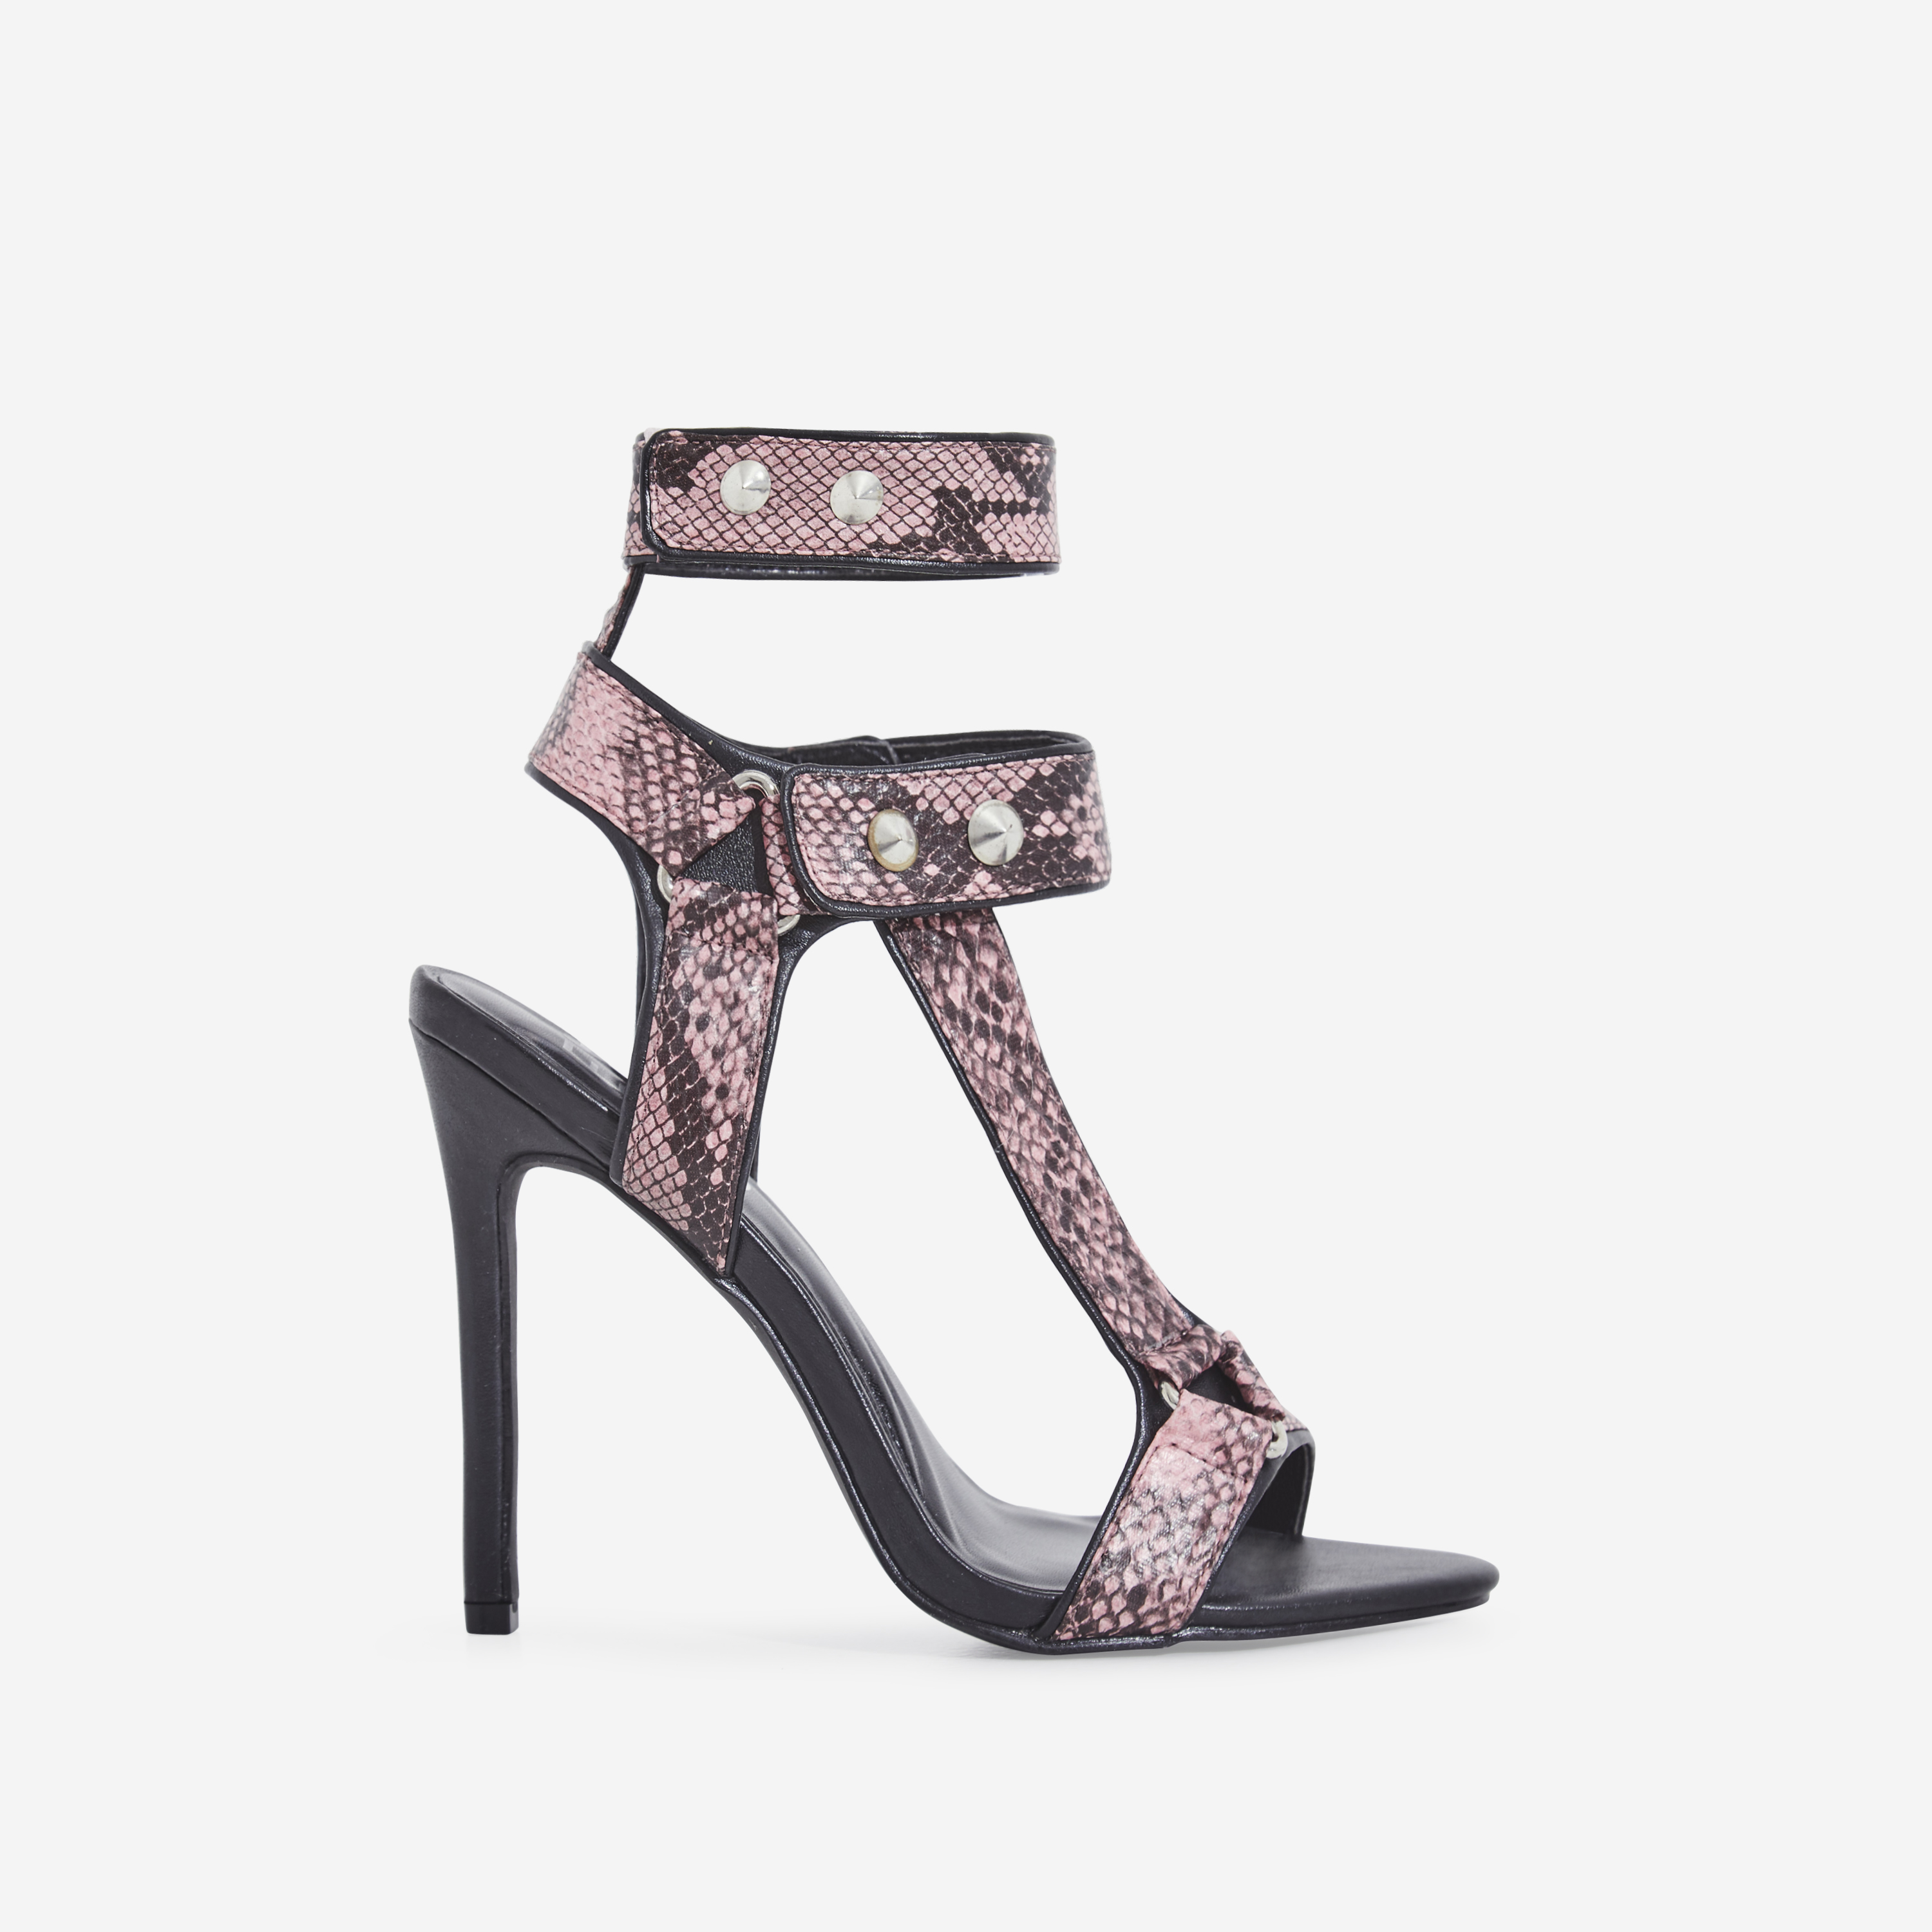 Alexis Cage Heel In Pink Snake Print Faux Leather